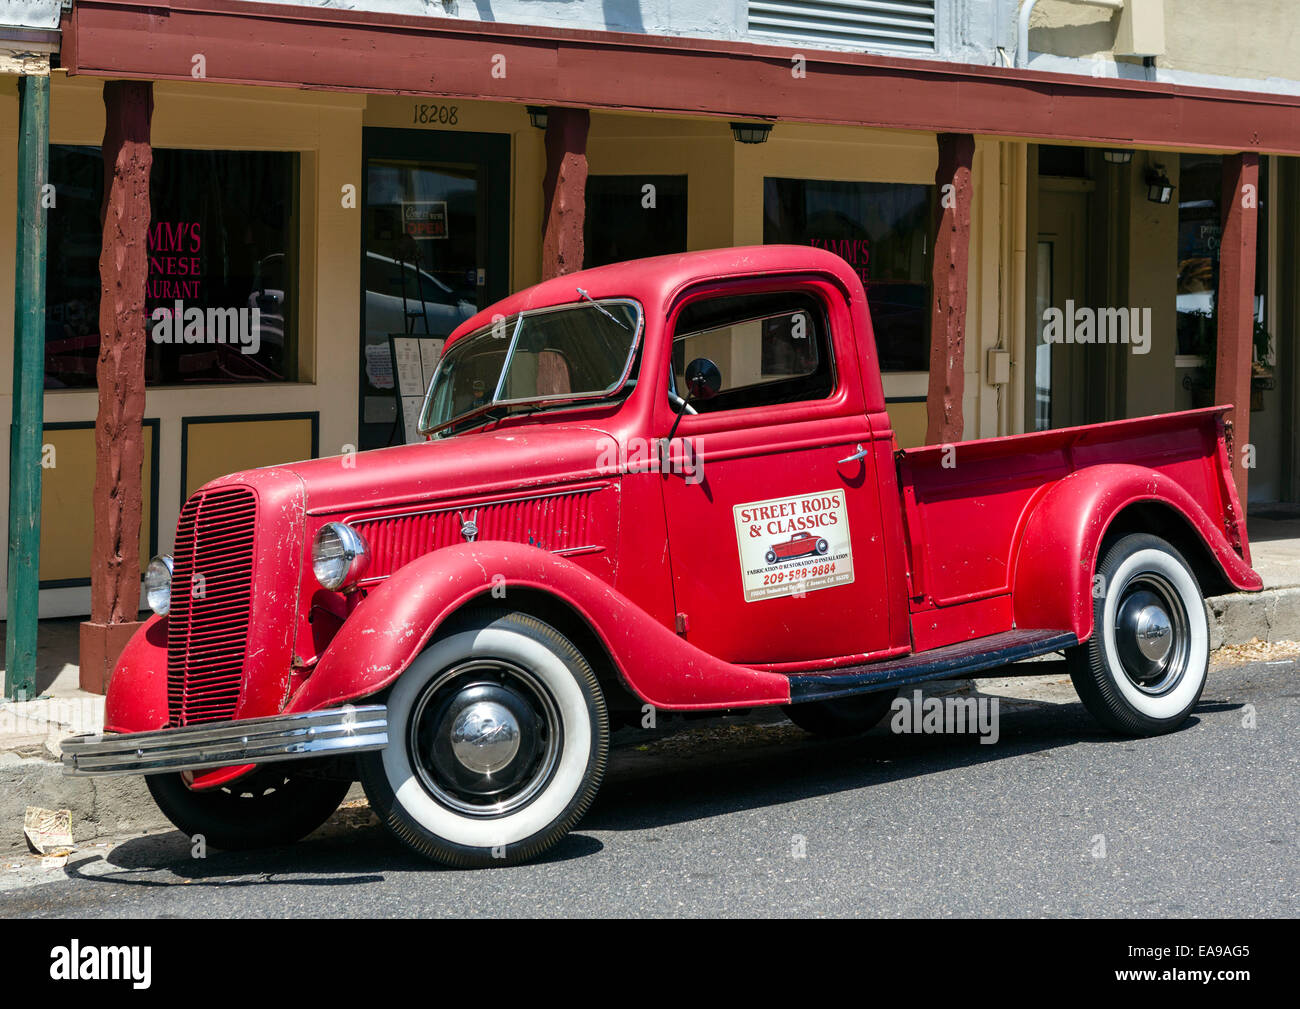 Old Ford Pickup Truck Stock Photos & Old Ford Pickup Truck Stock ...